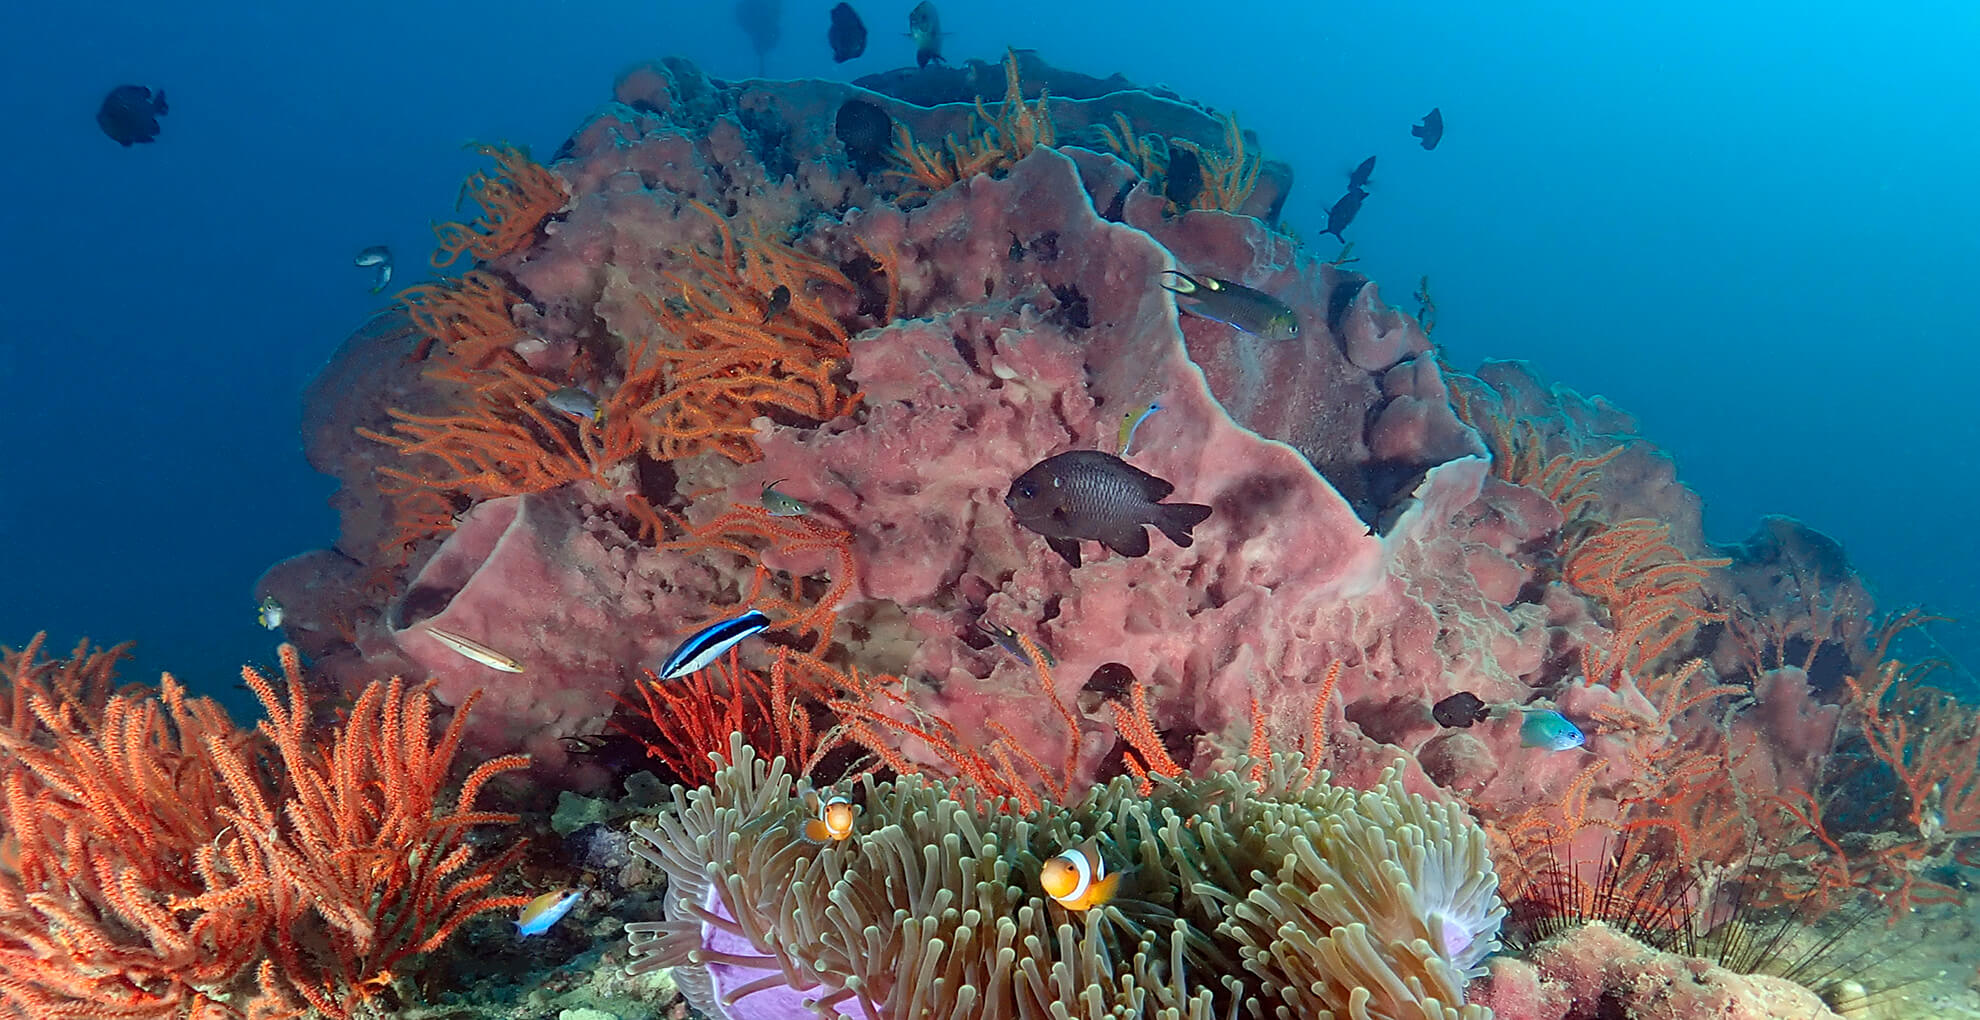 shark point is a highlight on the phuket diving agenda